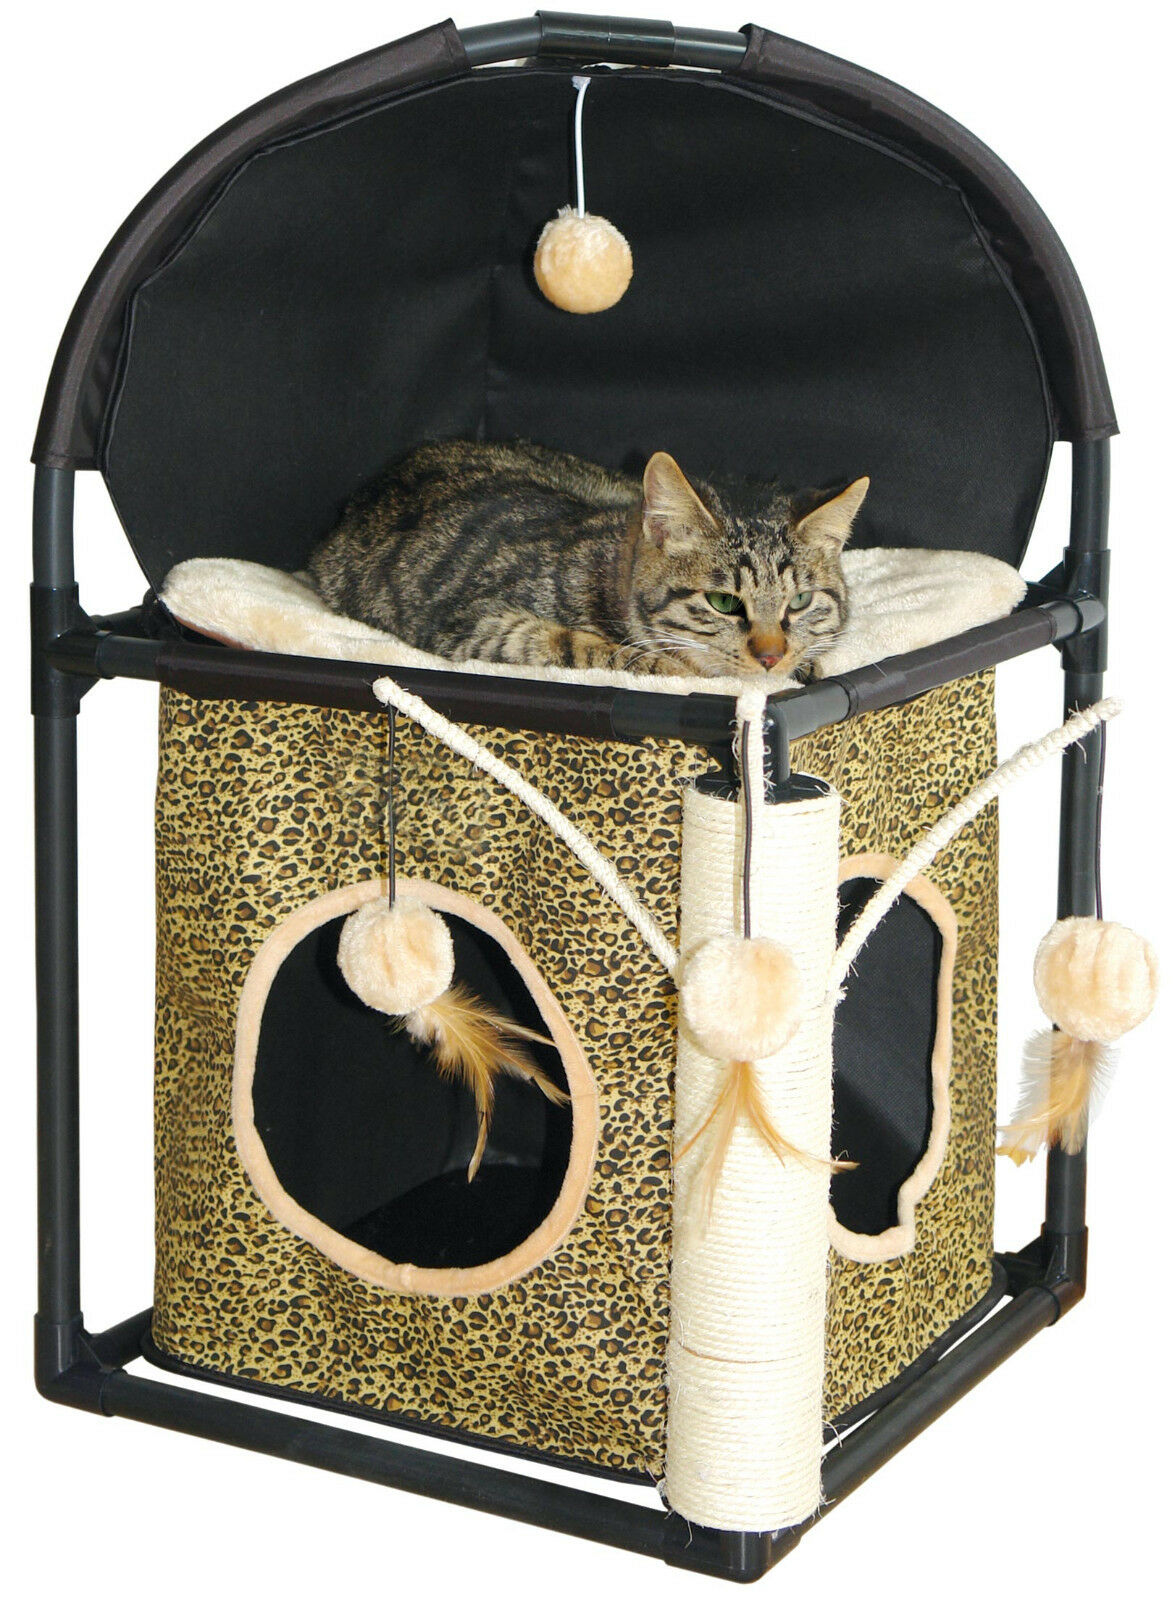 katzenkratzbaum mit sisalstamm h hle 4 b lle leopard katzenbaum kratzbaum katzen eur 39 99. Black Bedroom Furniture Sets. Home Design Ideas